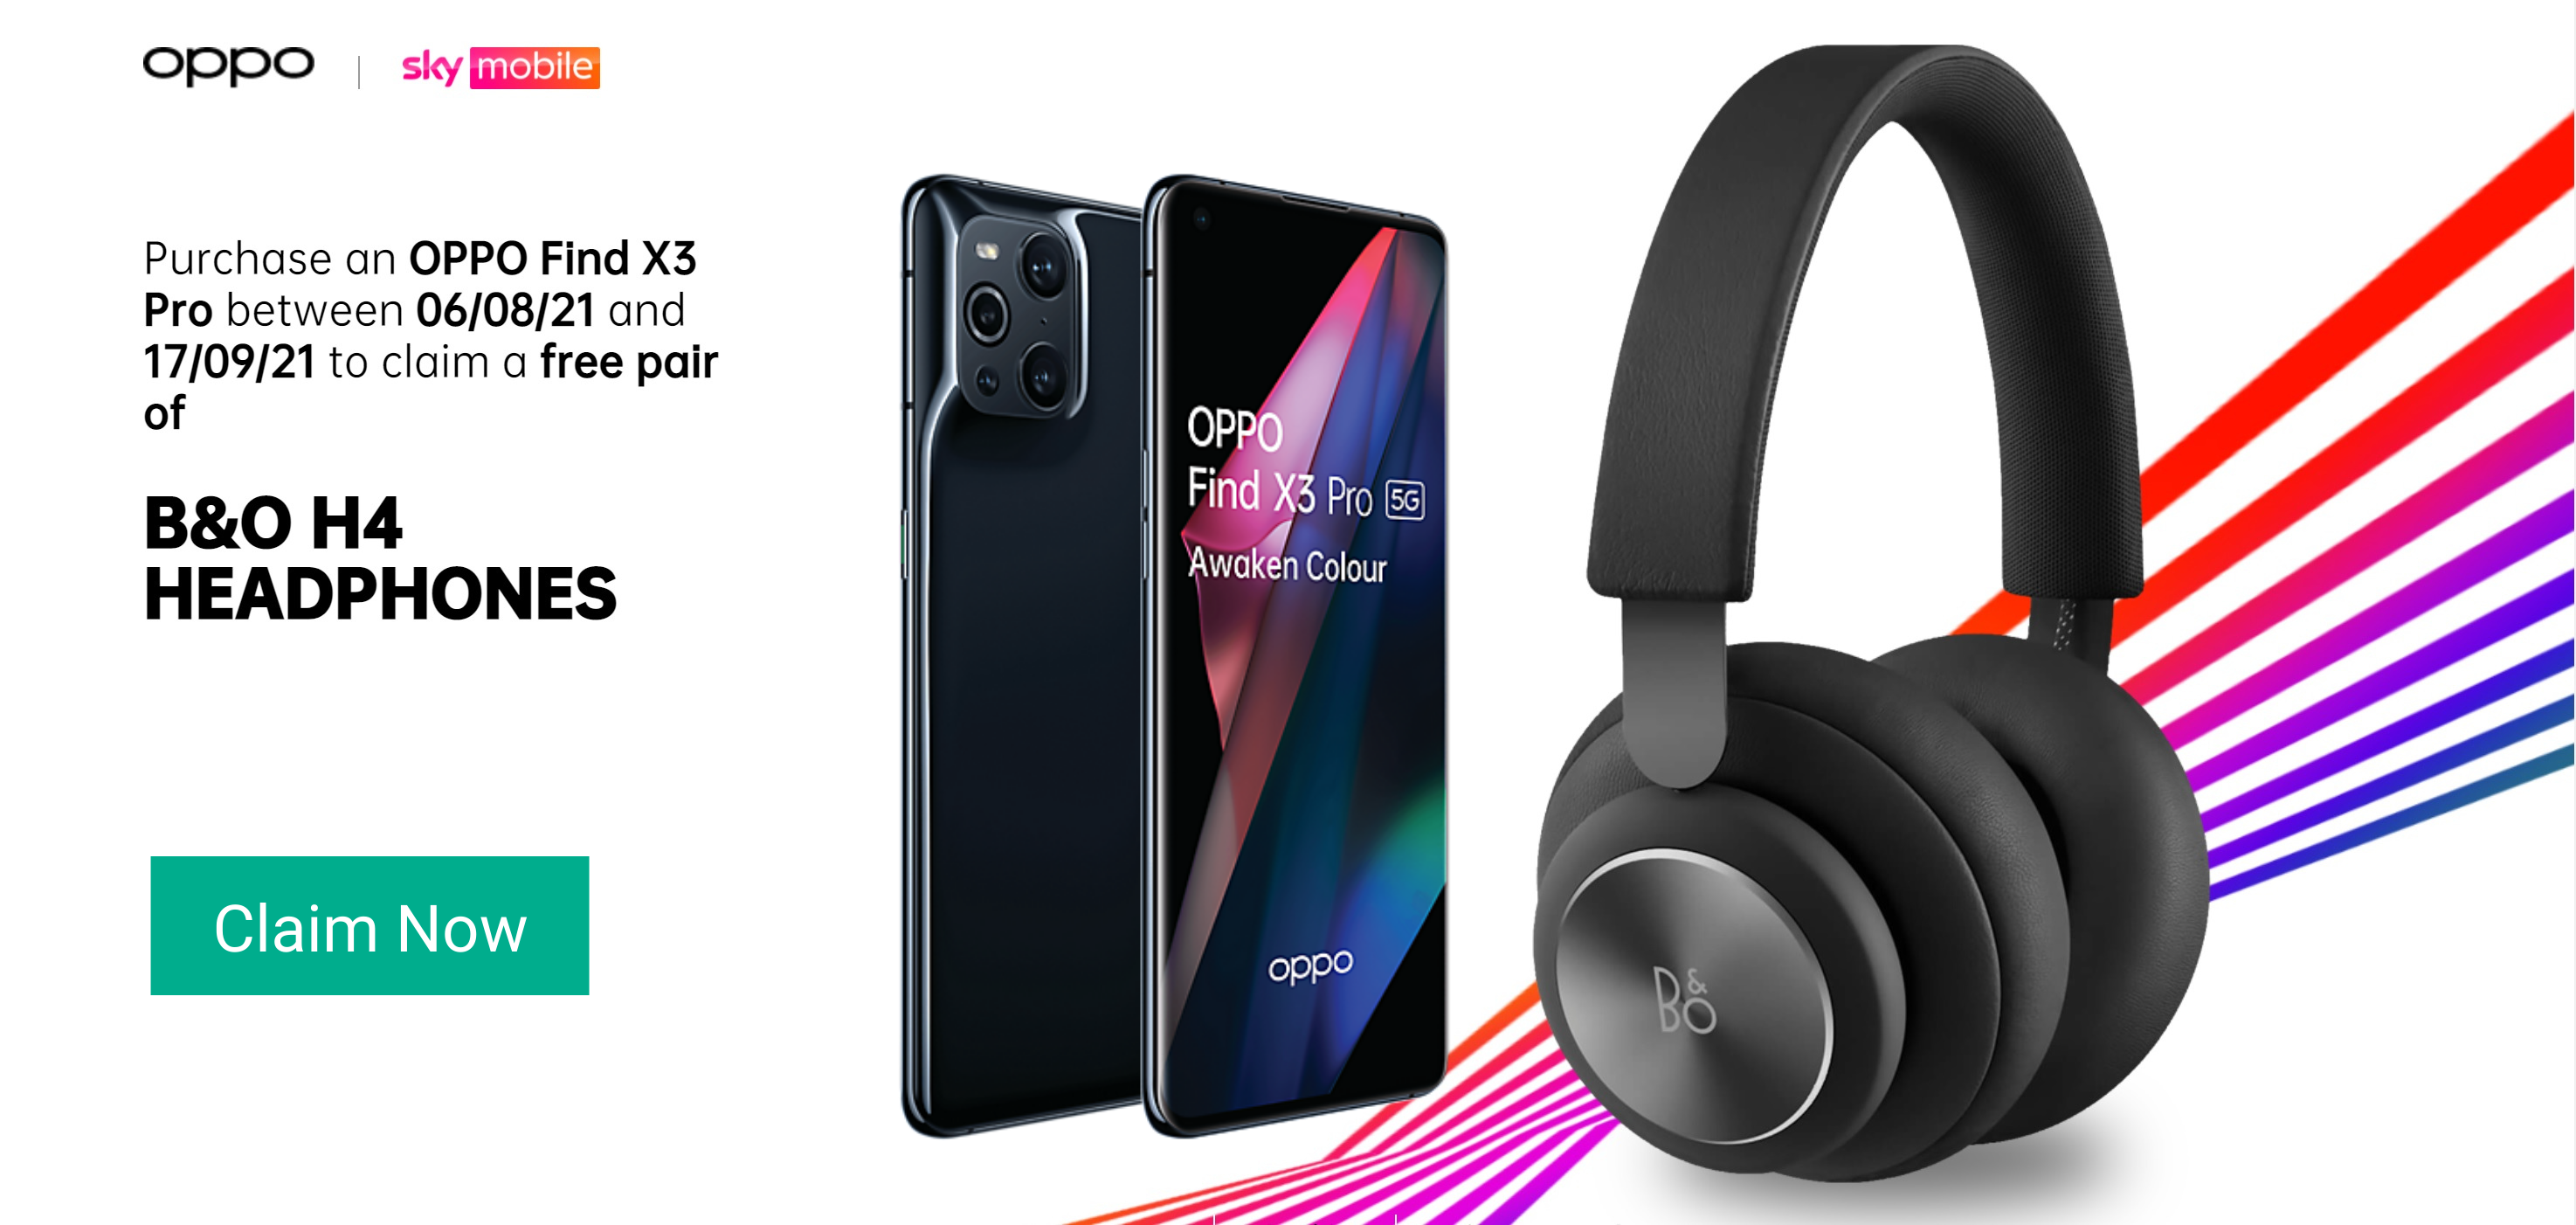 Oppo Find X3 Pro 5G deals with Free B&O Beoplay H4 headphones worth £230